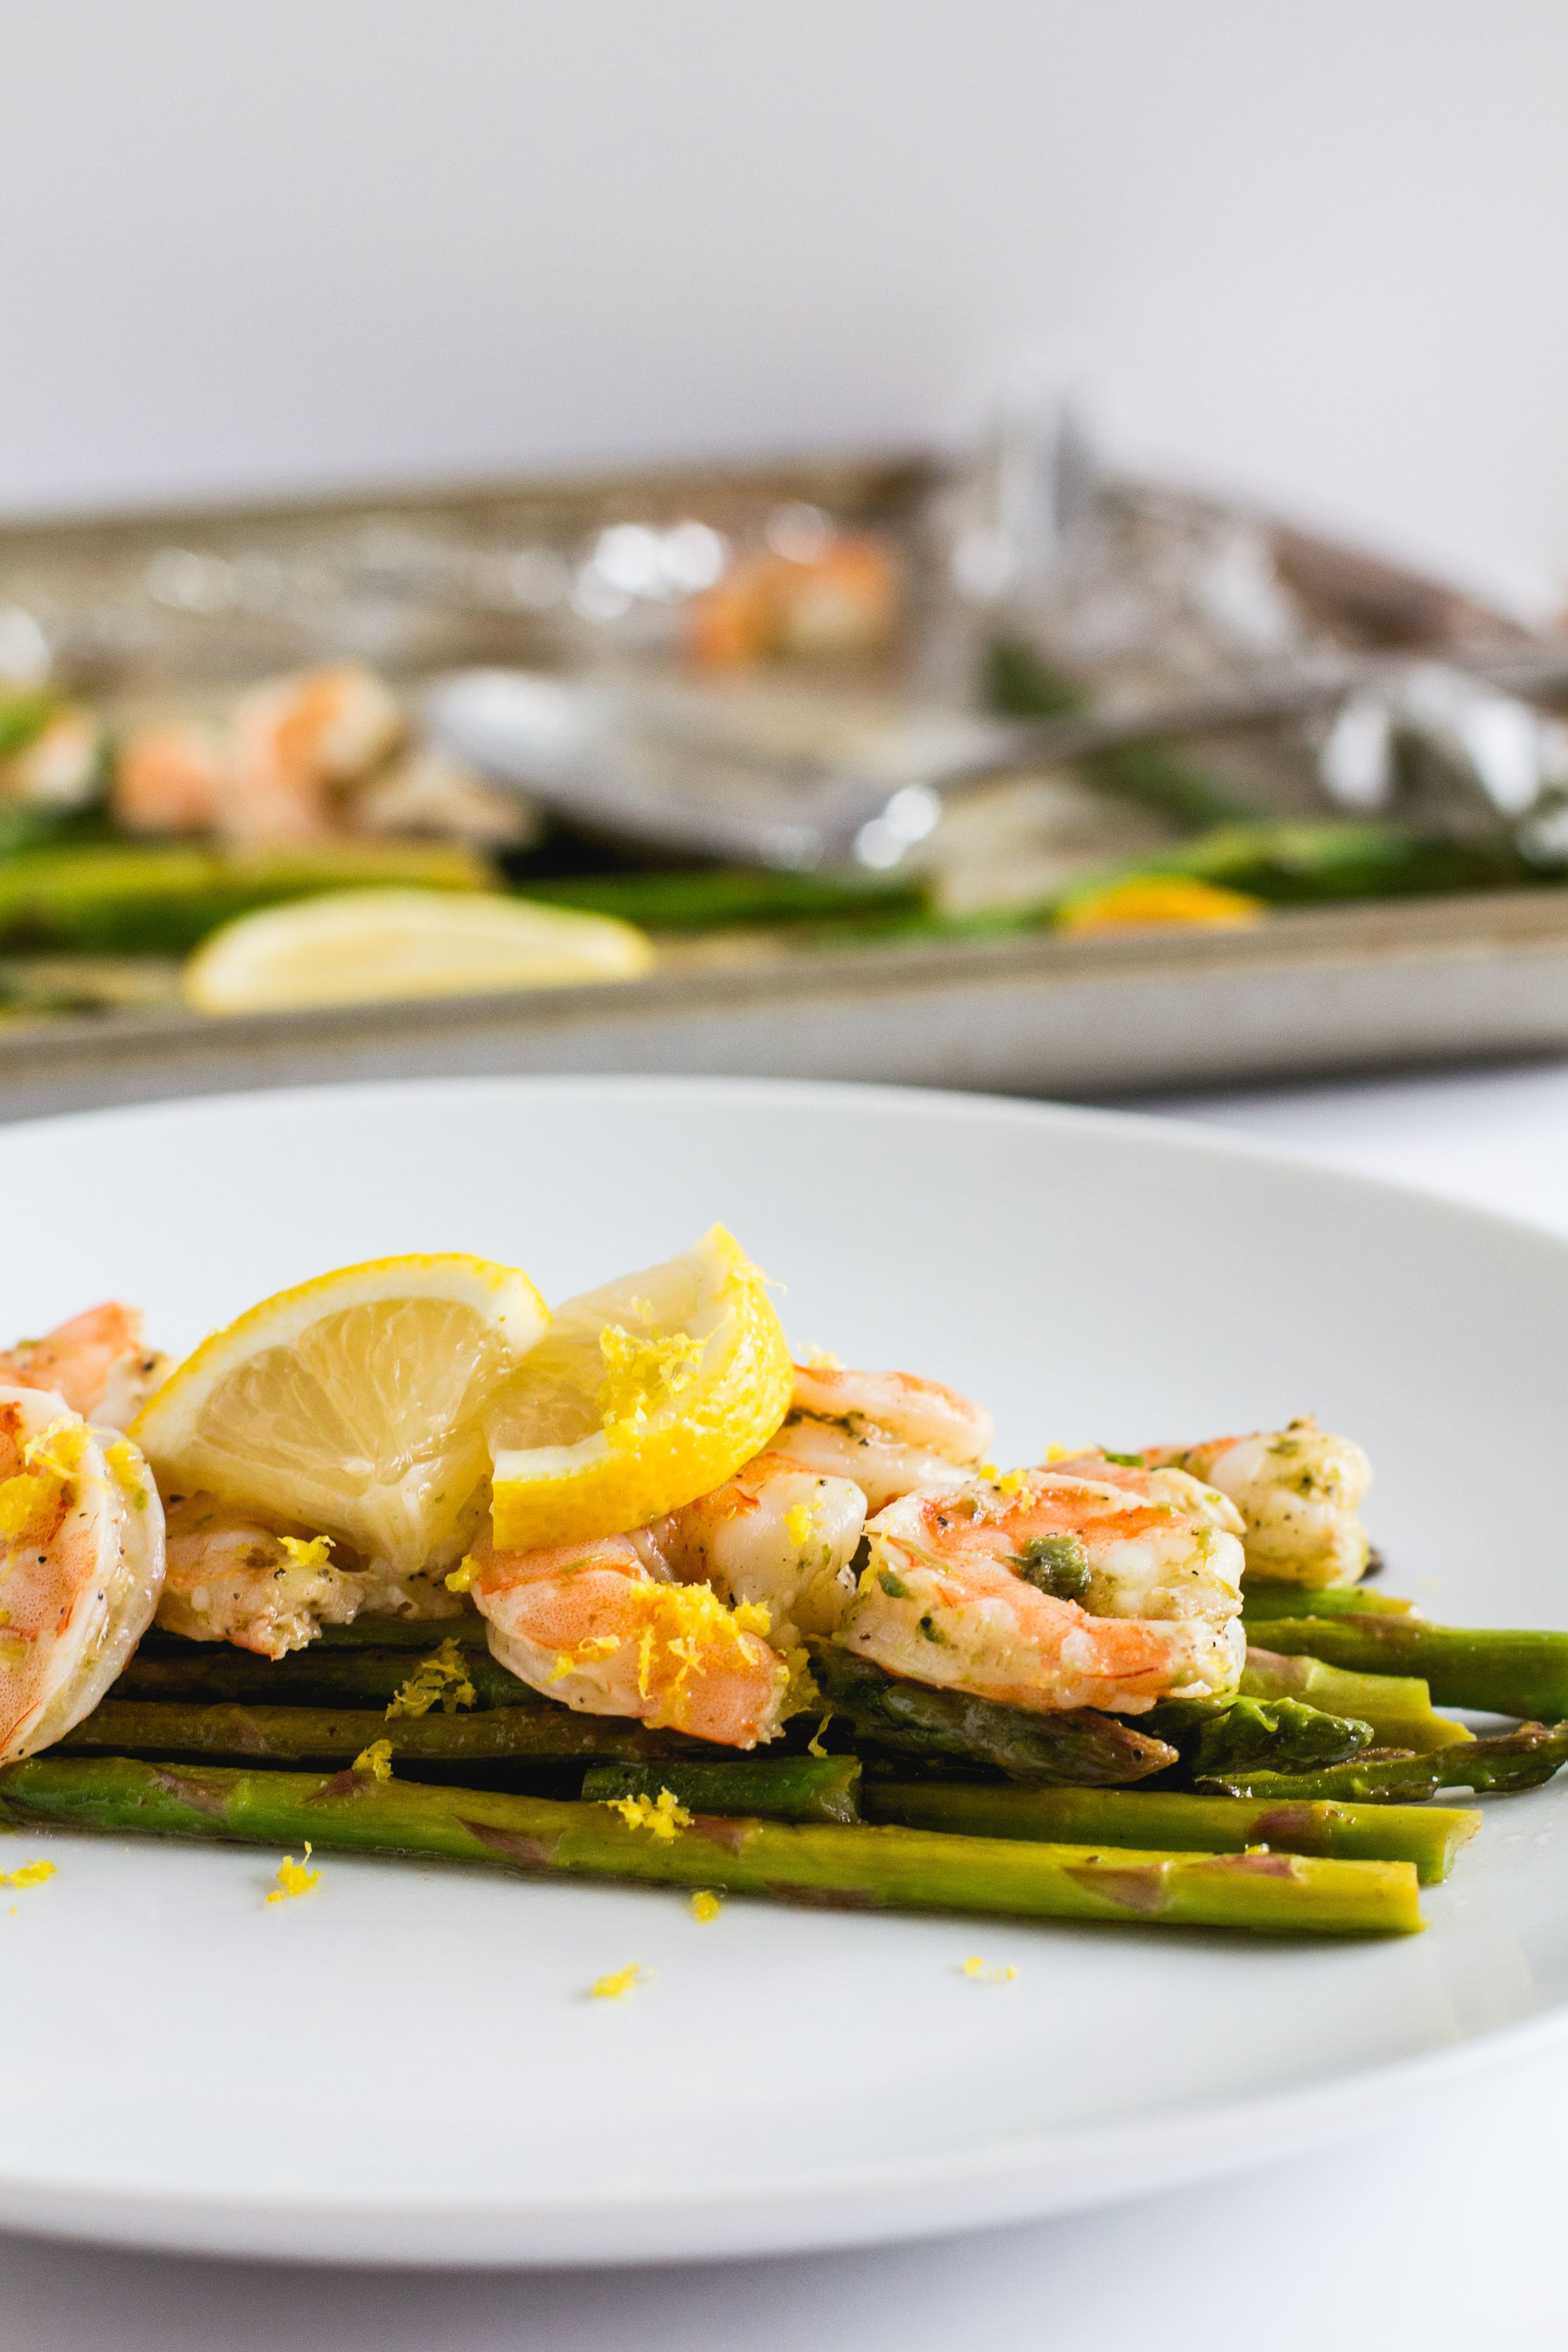 One Pan Roasted Shrimp + Asparagus — This super easy weeknight meal is gluten-free, dairy-free, whole30, and keto-friendly! Get the recipe at sarahjhauser.com! | Sarah J. Hauser #glutenfreerecipes #lowcarbmeals #whole30dinner